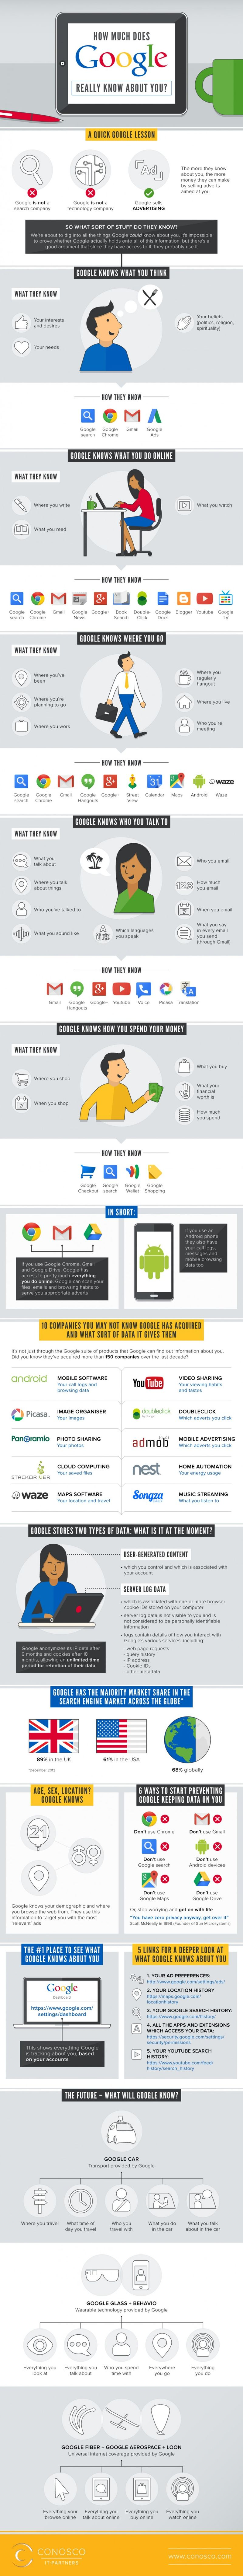 What-Google-knows-about-you-830x8781